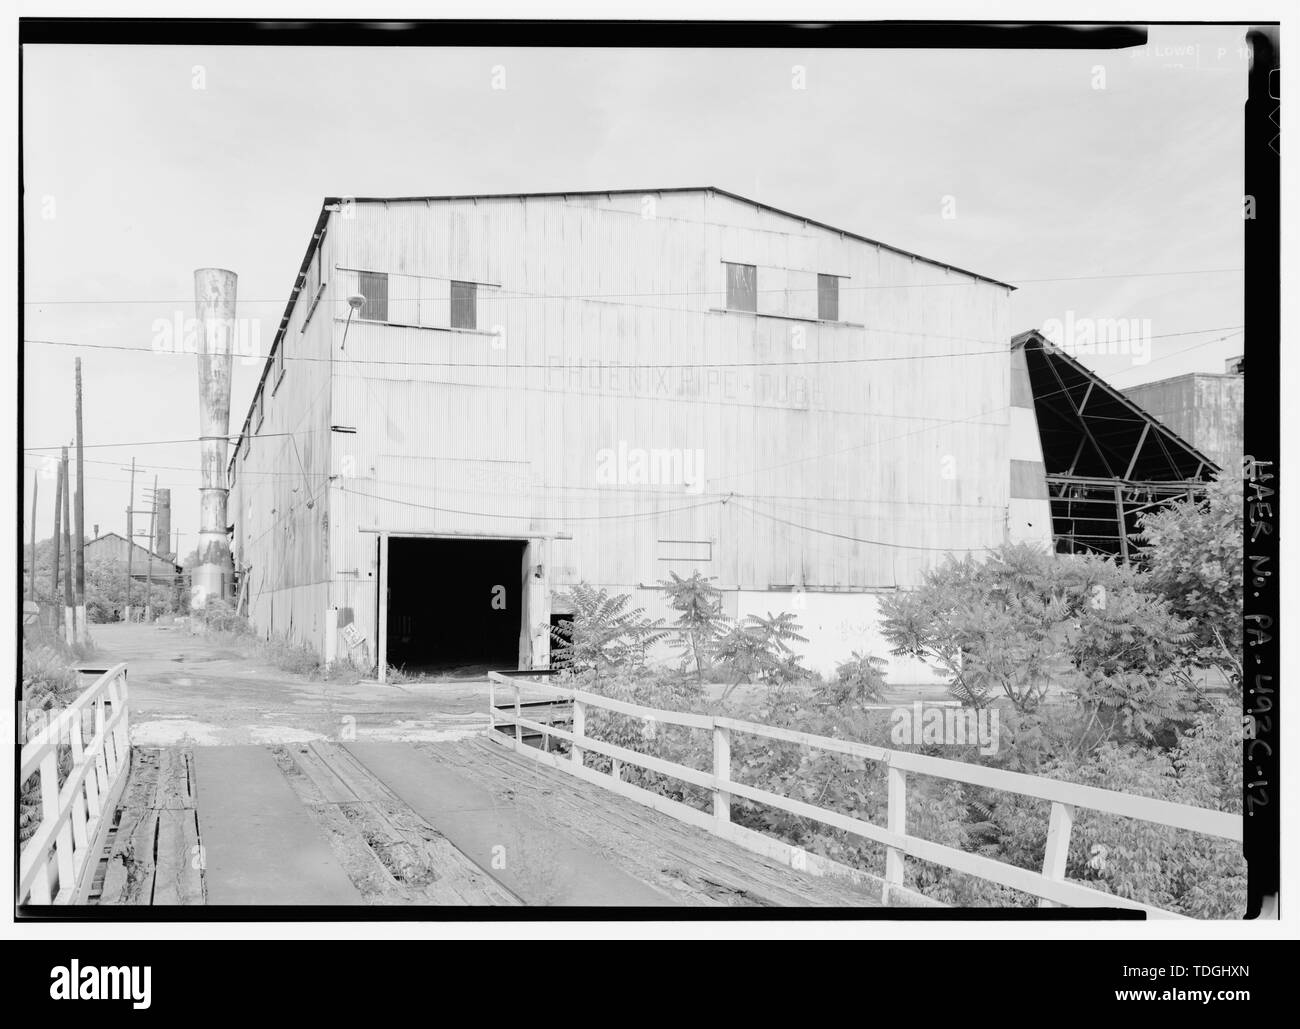 NW corner of rolling mill, looking east from bridge over French Creek. - Phoenix Iron Company, Rolling Mill, North of French Creek, west of Fairview Avenue, Phoenixville, Chester County, PA; DeLony, Eric N, project manager; Pennsylvania Department of Transportation, sponsor; Pennsylvania Historical and Museum Commission, sponsor; Lowe, Jet, photographer - Stock Image